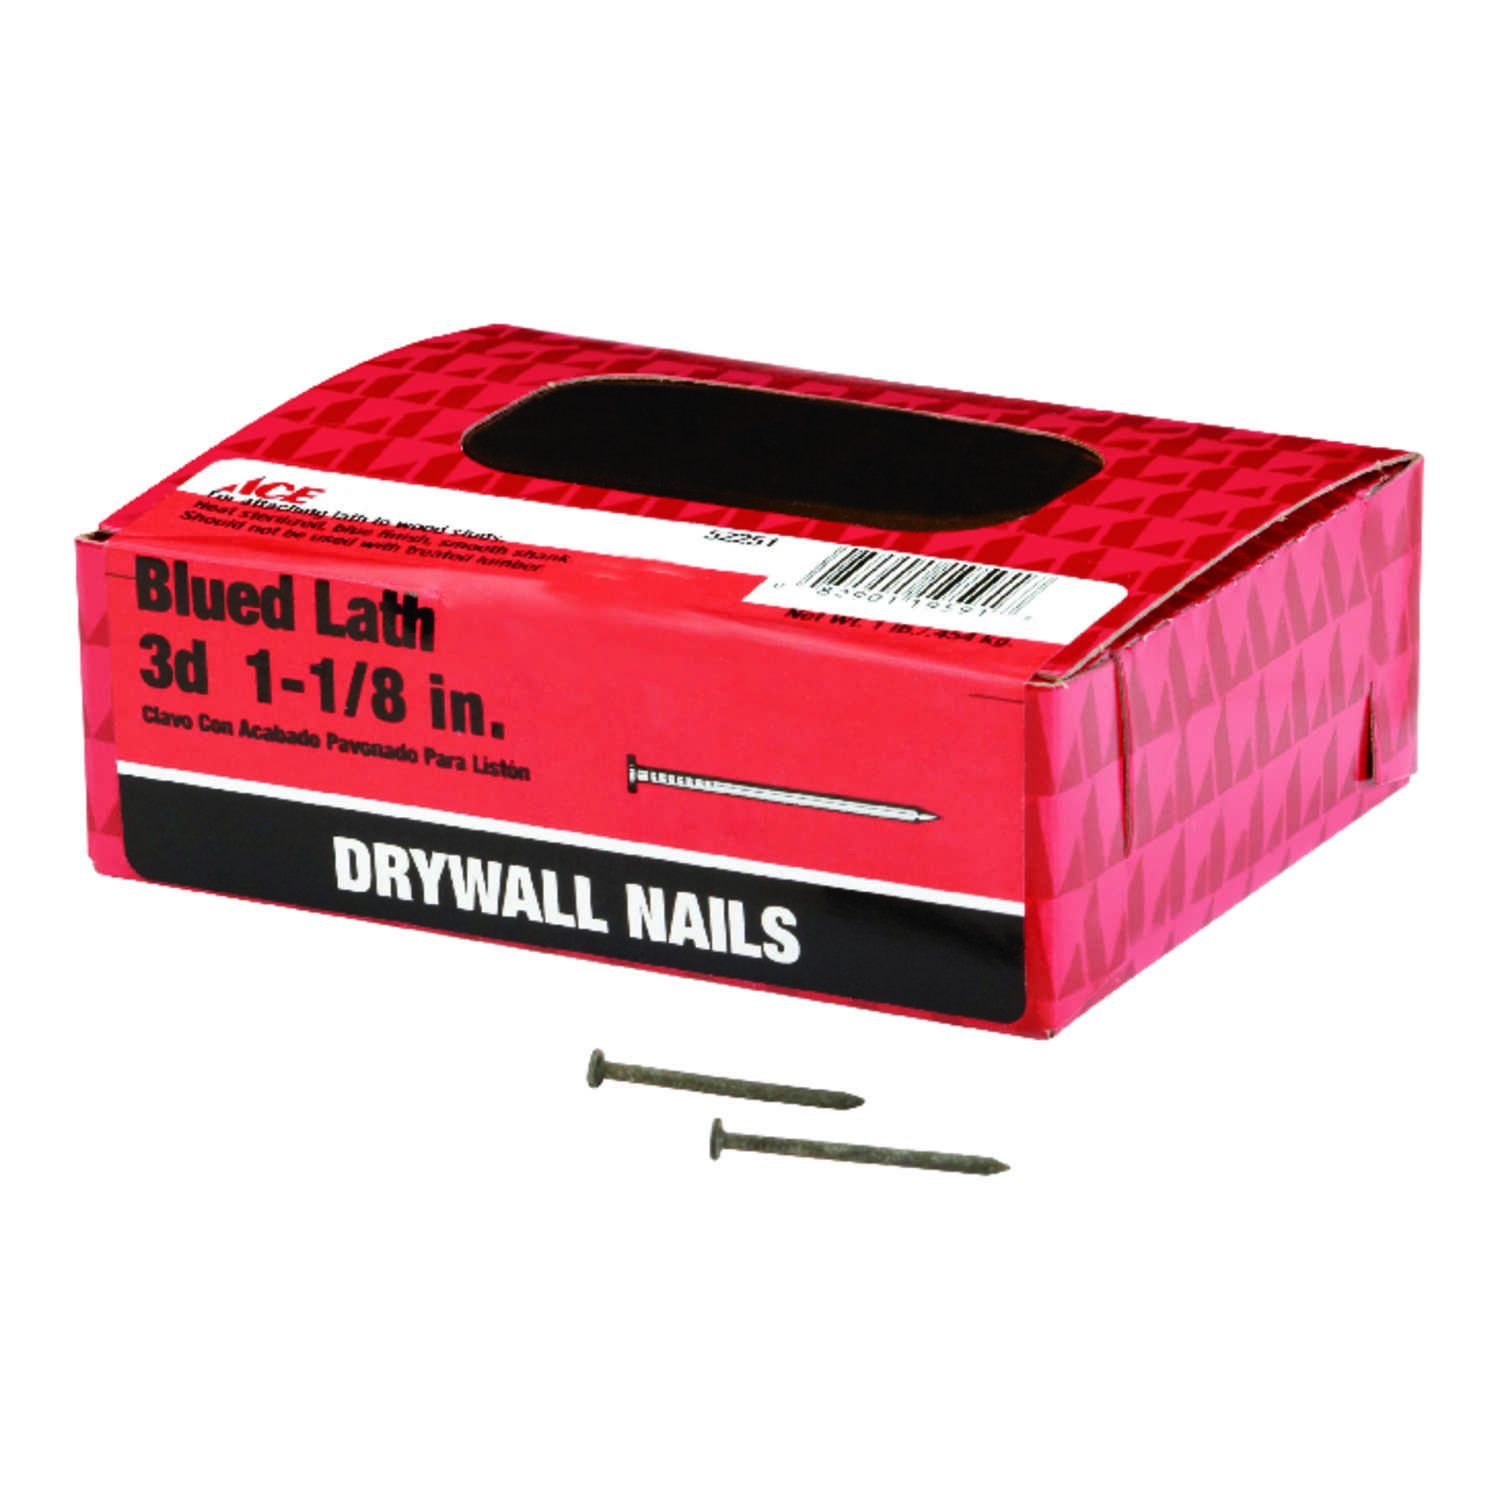 Ace  3D  1-1/8 in. L Drywall  Blue  Steel  Nail  Smooth Shank  Flat  1 lb.